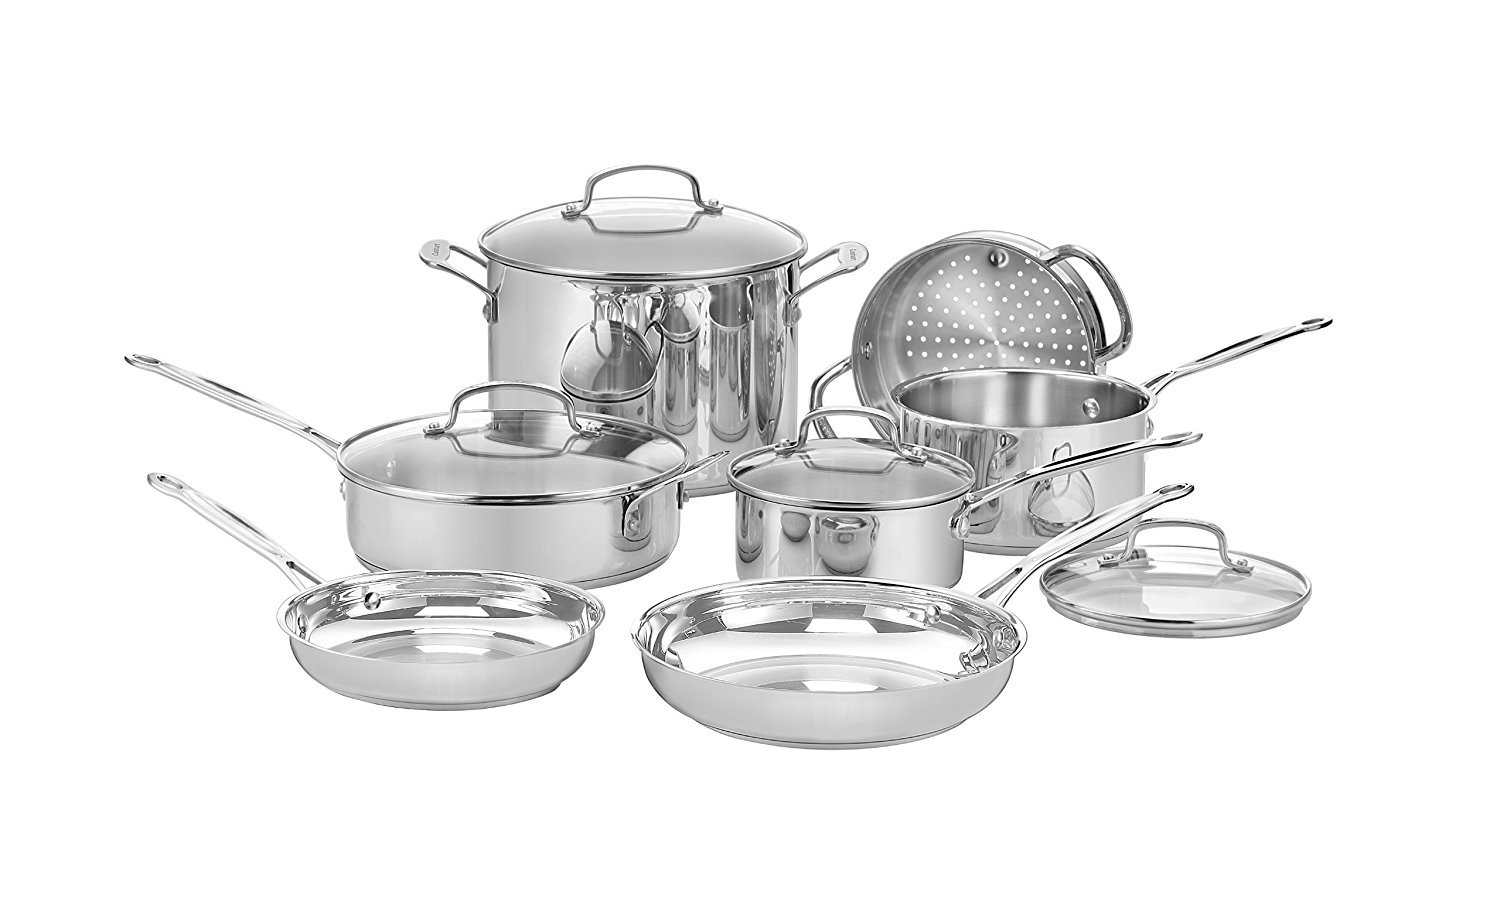 Cuisinart 77-11G Chef's Classic Stainless 11-Piece Cookware Set